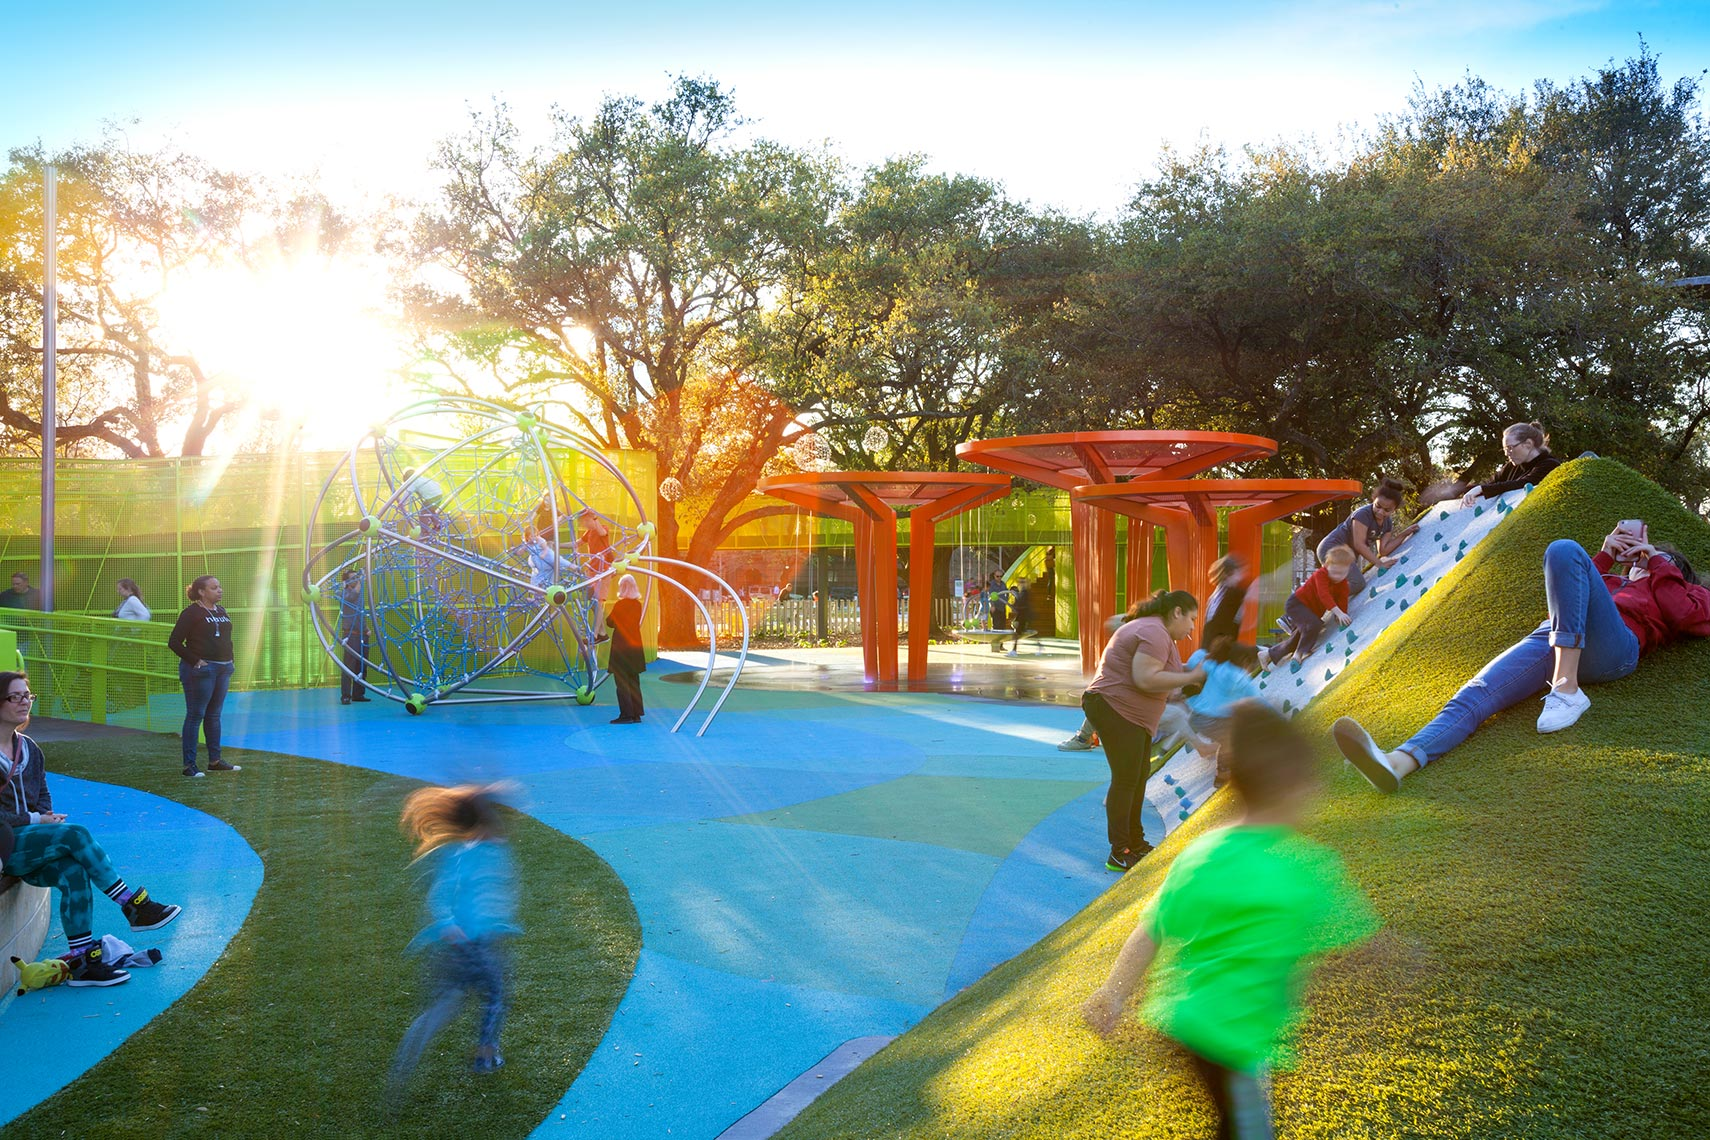 Kids playing at Levy Park in Upper Kirby by Landscape Architectural Photographer in the Gulf Coast